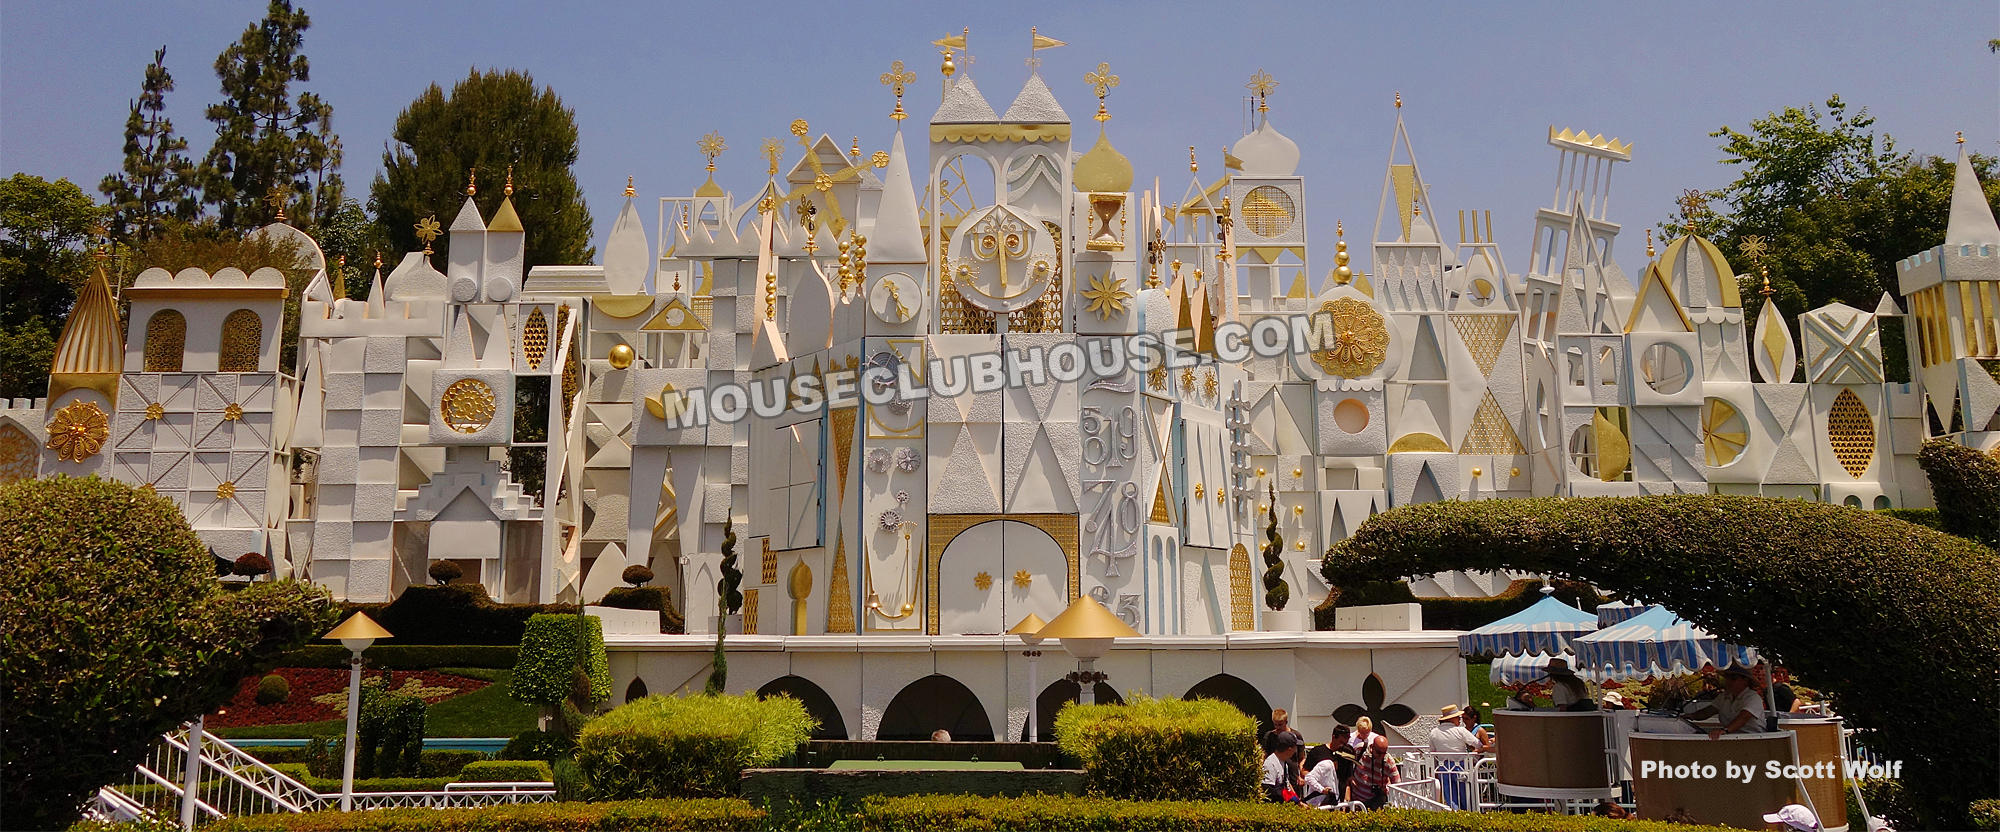 It's a Small World, 2015 photo